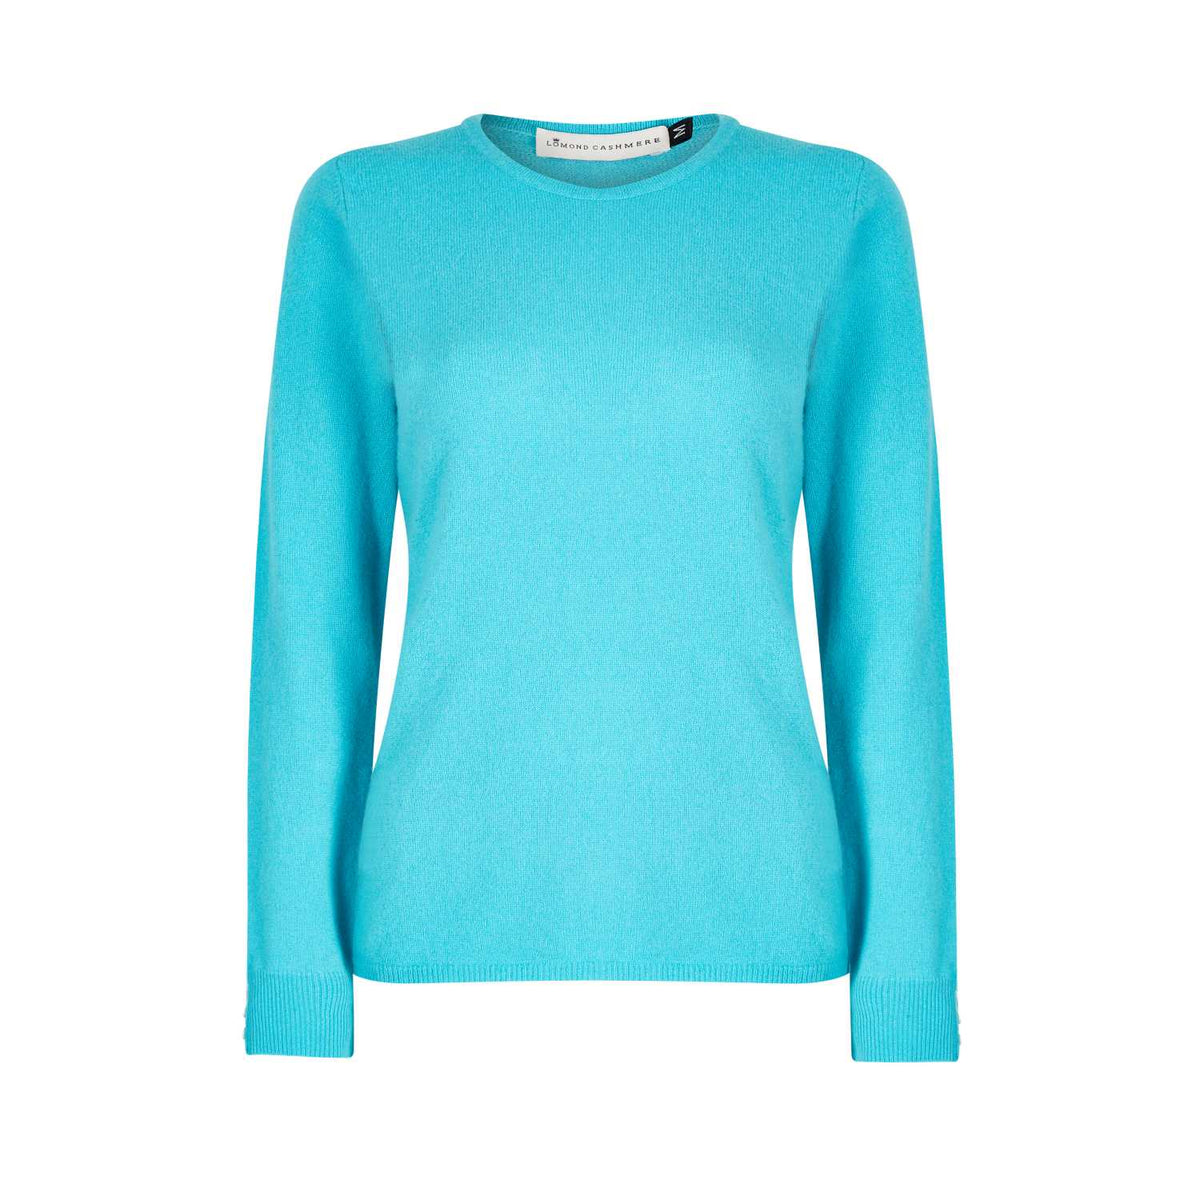 Lomond Cashmere | Ladies 2-Ply Cashmere Round Neck | Jade Green | Shop now at The Cashmere Choice | London